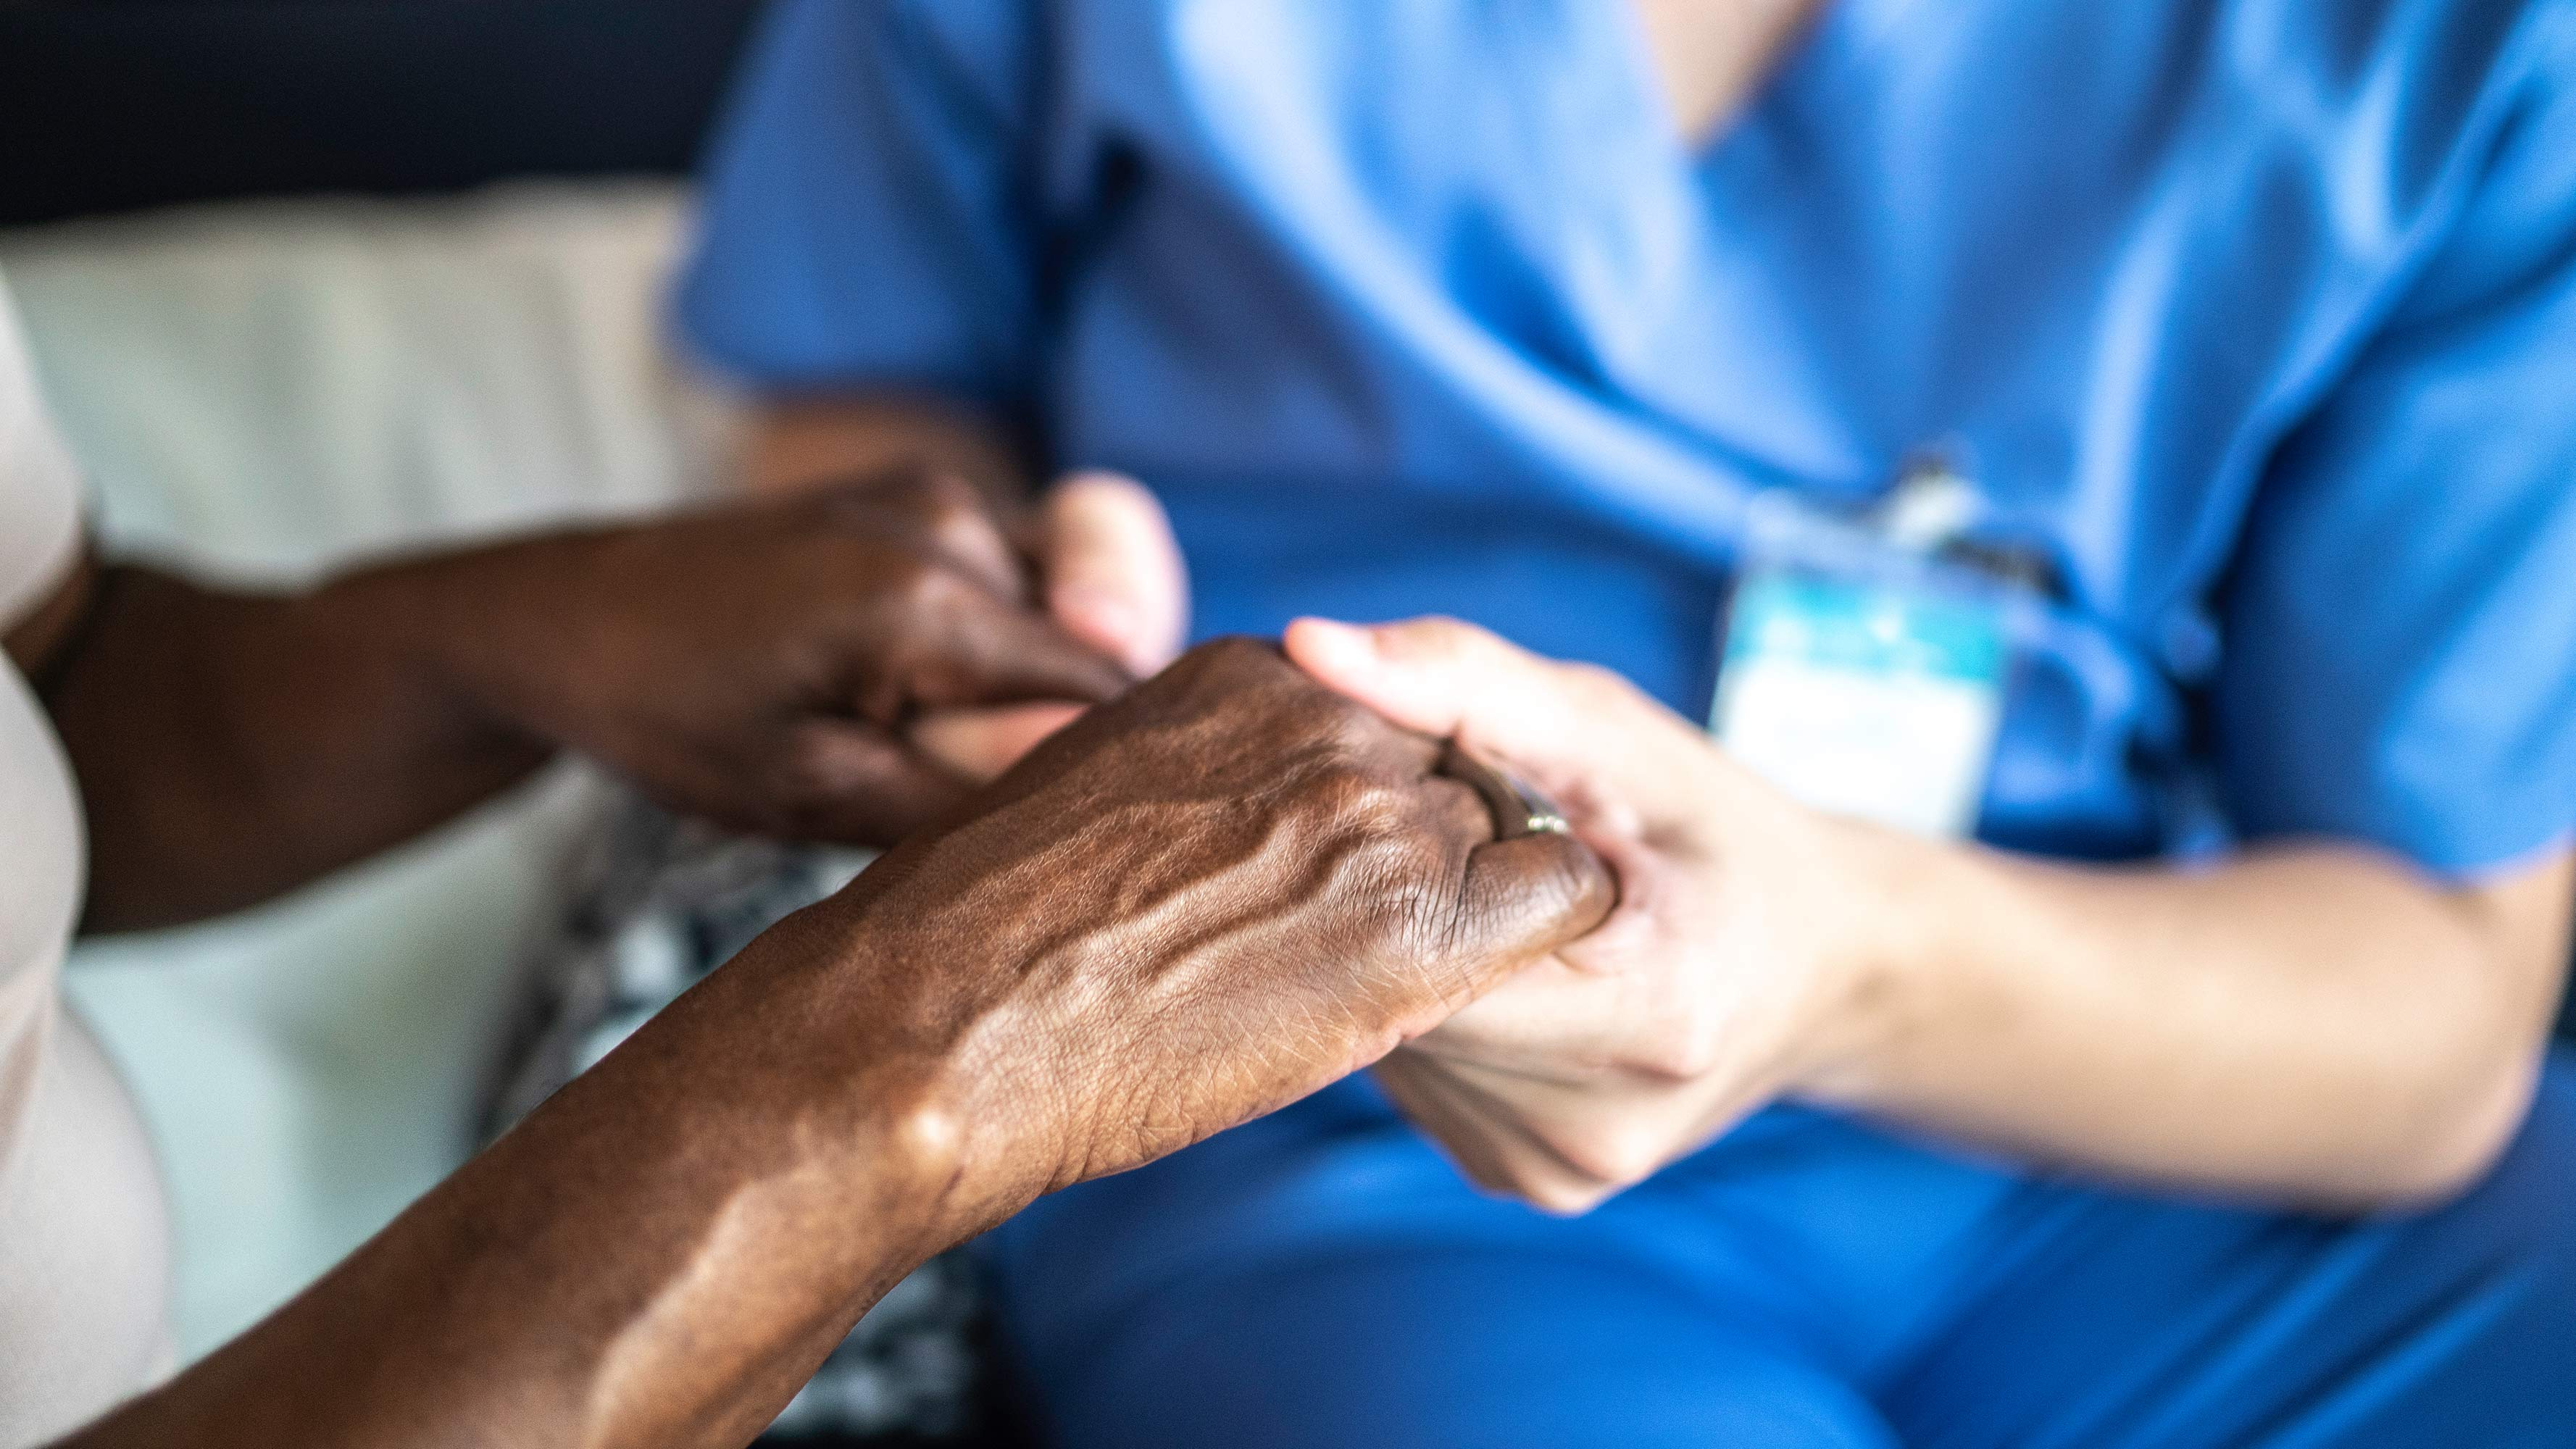 A close-up photo of a nurse, wearing bright blue scrubs, holding the hand of patient.